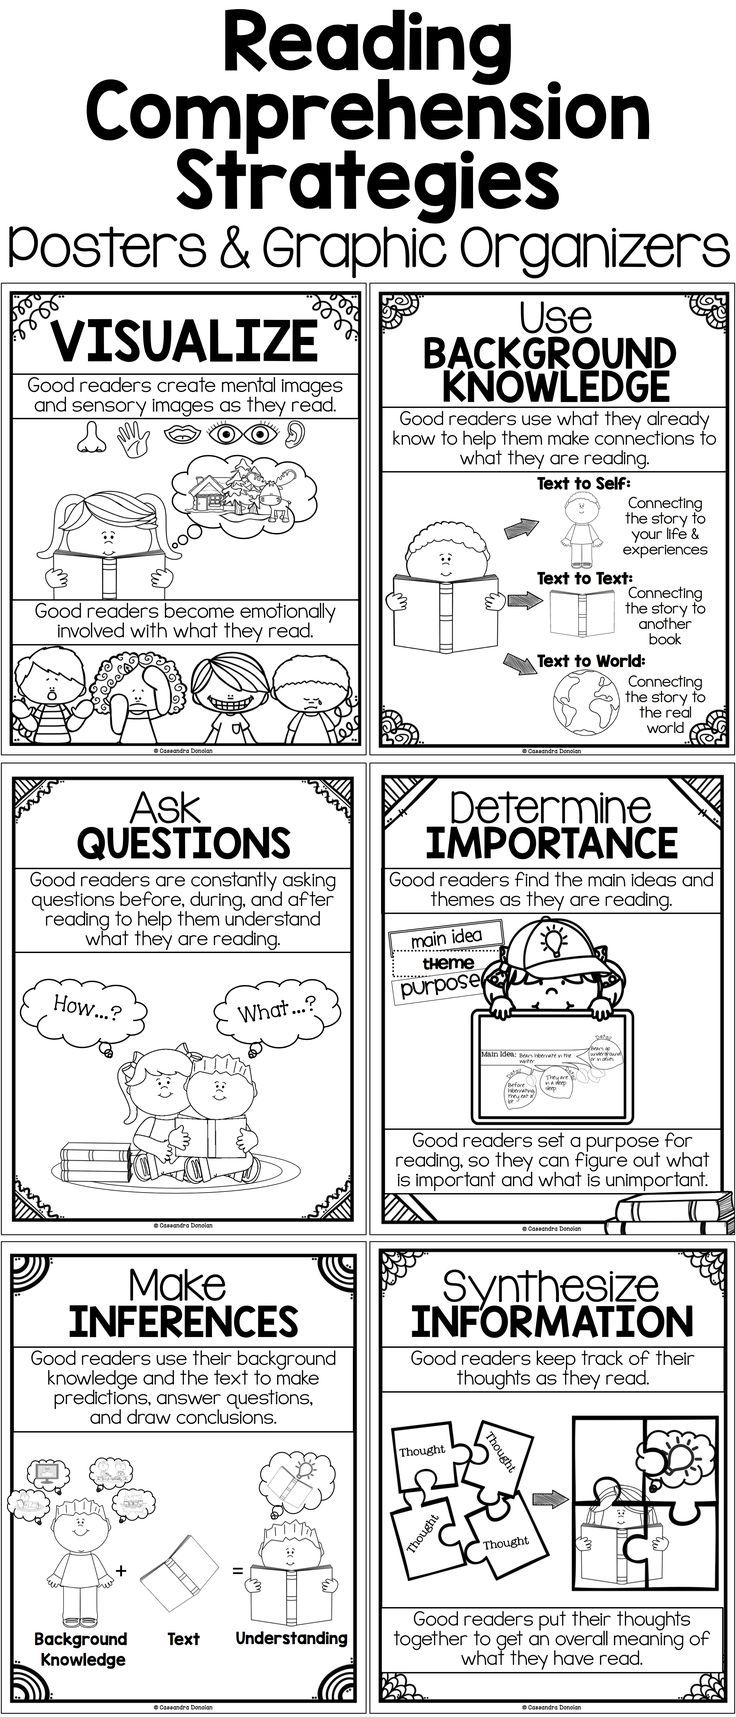 - Reading Comprehension Strategies Posters, Graphic Organizers - At